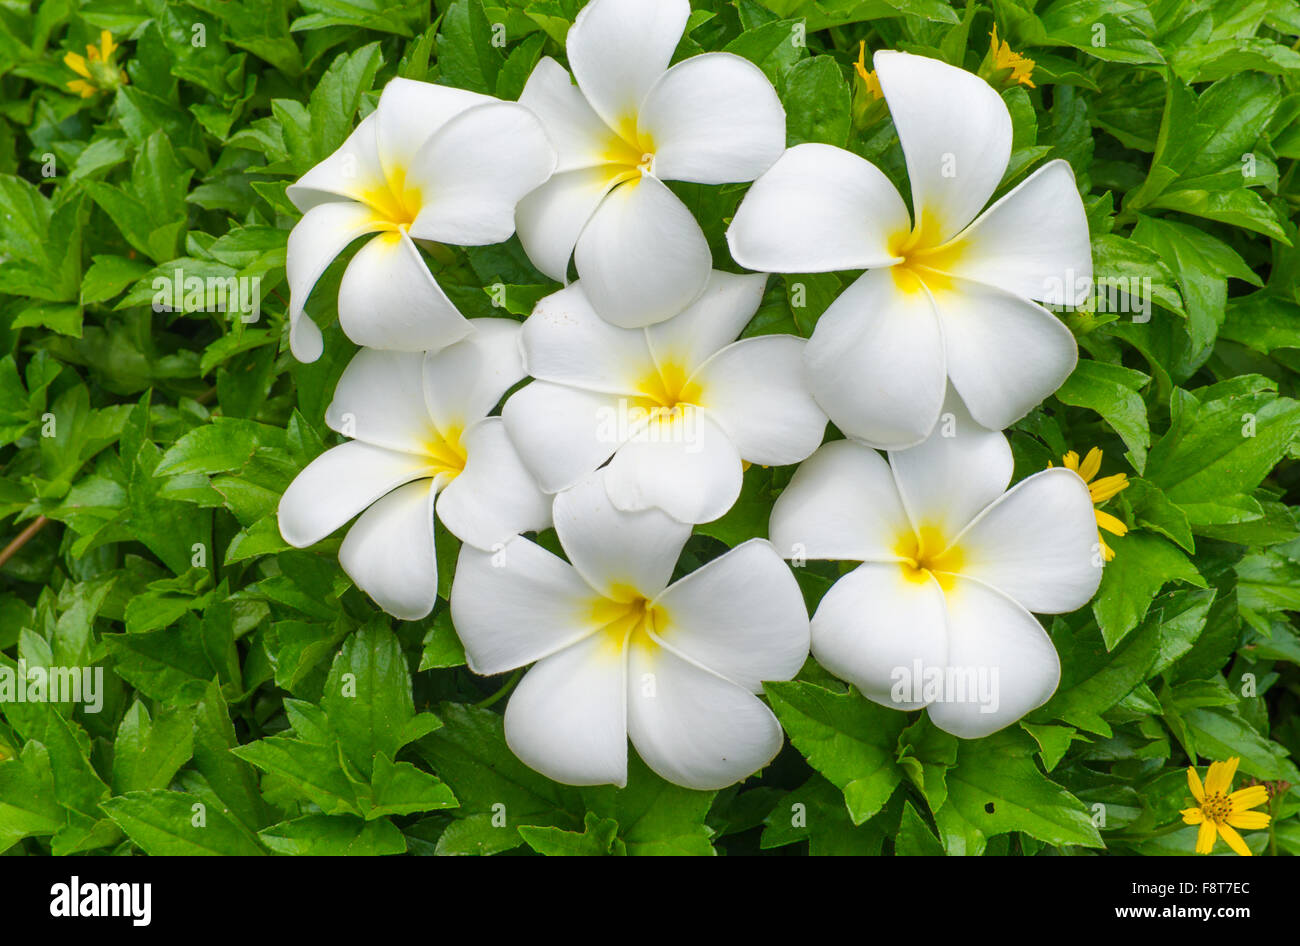 White yellow tropical flowers stock photos white yellow tropical white flowers of a pakhipodium with the yellow center against green leaves stock image mightylinksfo